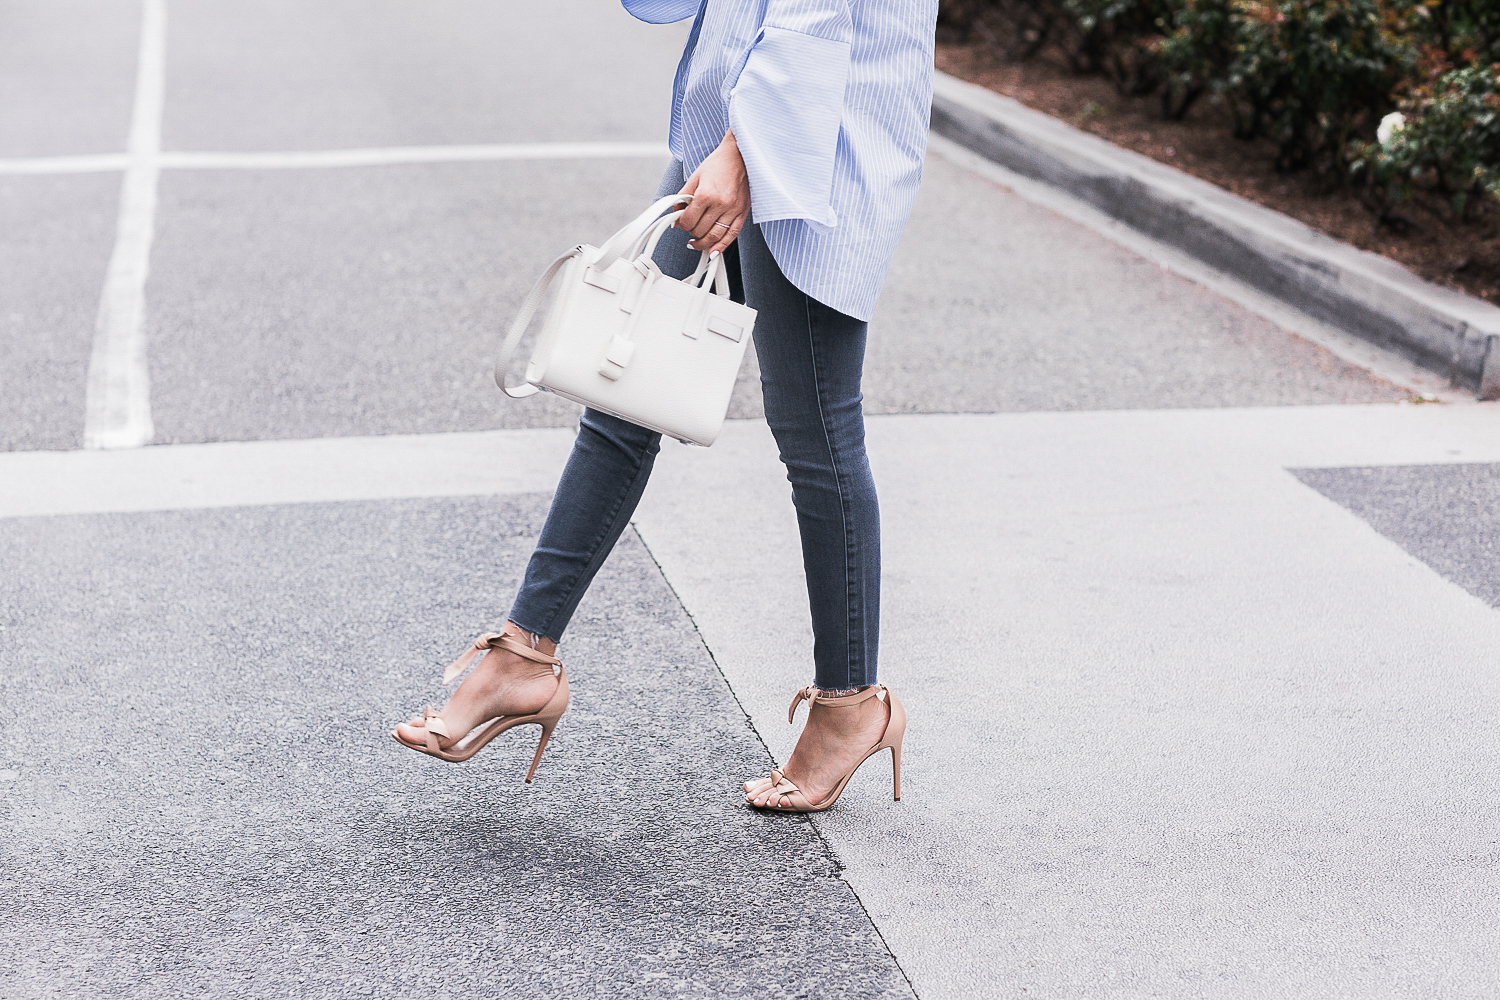 Style MBA wears nude heels and white bag